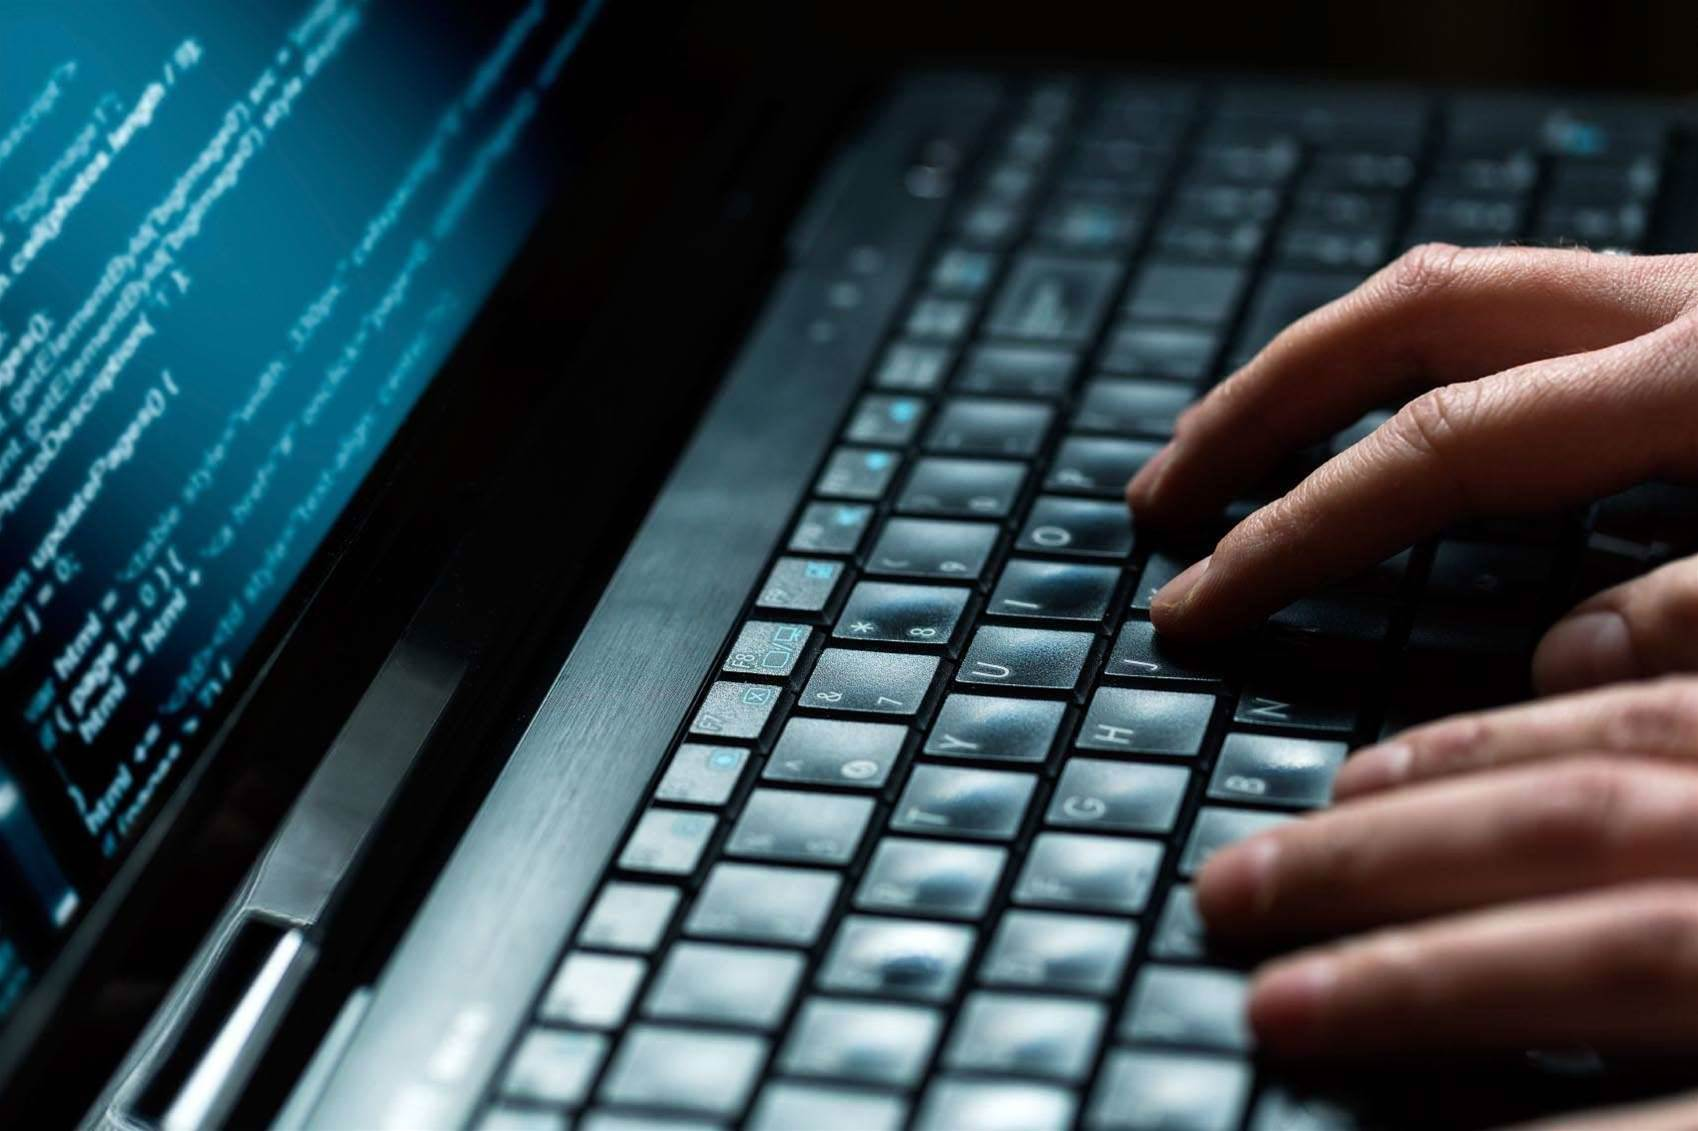 Dangerous XSS bug discovered in fully patched IE